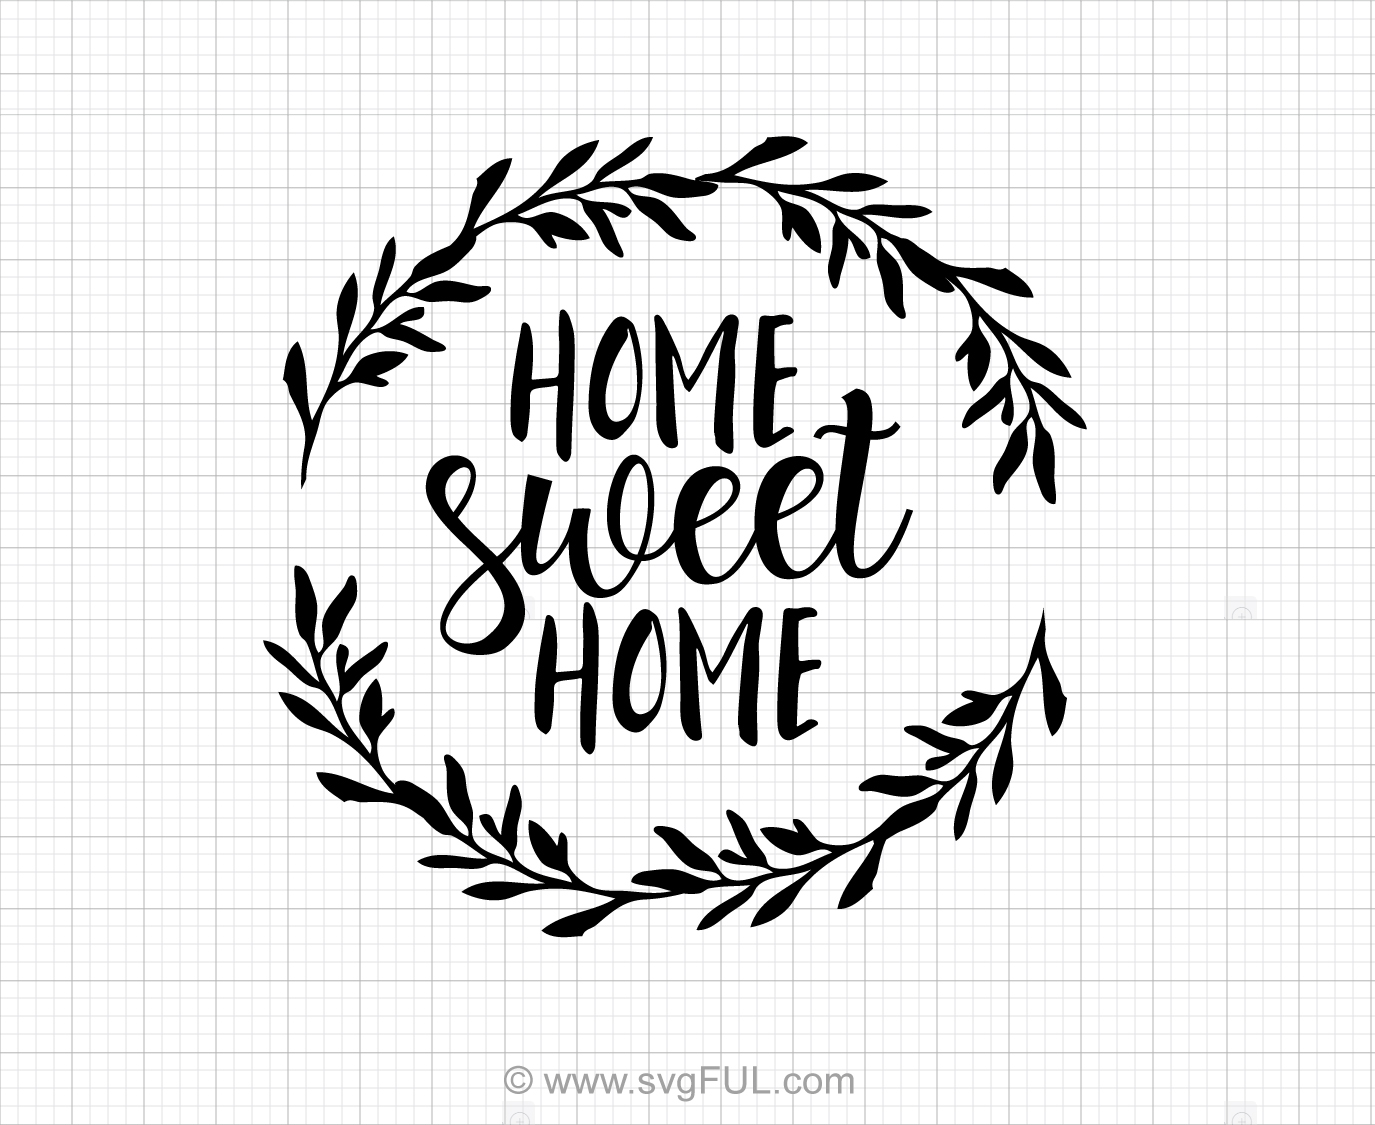 Home sweet home clipart white graphic stock Home Sweet Home Clipart (110+ images in Collection) Page 1 graphic stock